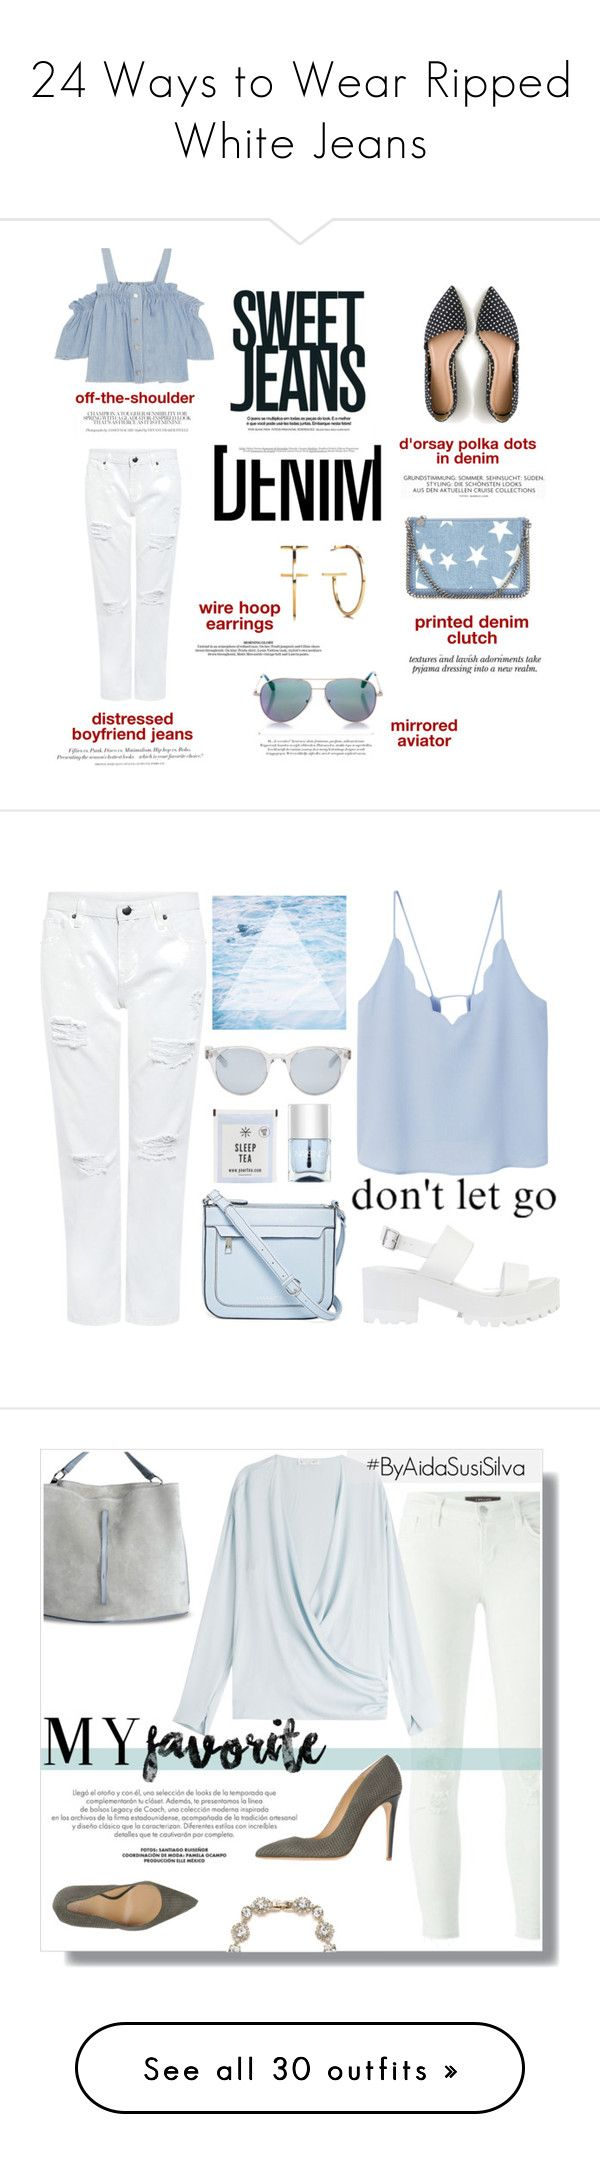 """24 Ways to Wear Ripped White Jeans"" by polyvore-editorial ❤ liked on Polyvore featuring waystowear, rippedwhitejeans, Steve J & Yoni P, Edit, H&M, J.Crew, STELLA McCARTNEY, Nicole, Cutler and Gross and Denimondenim"